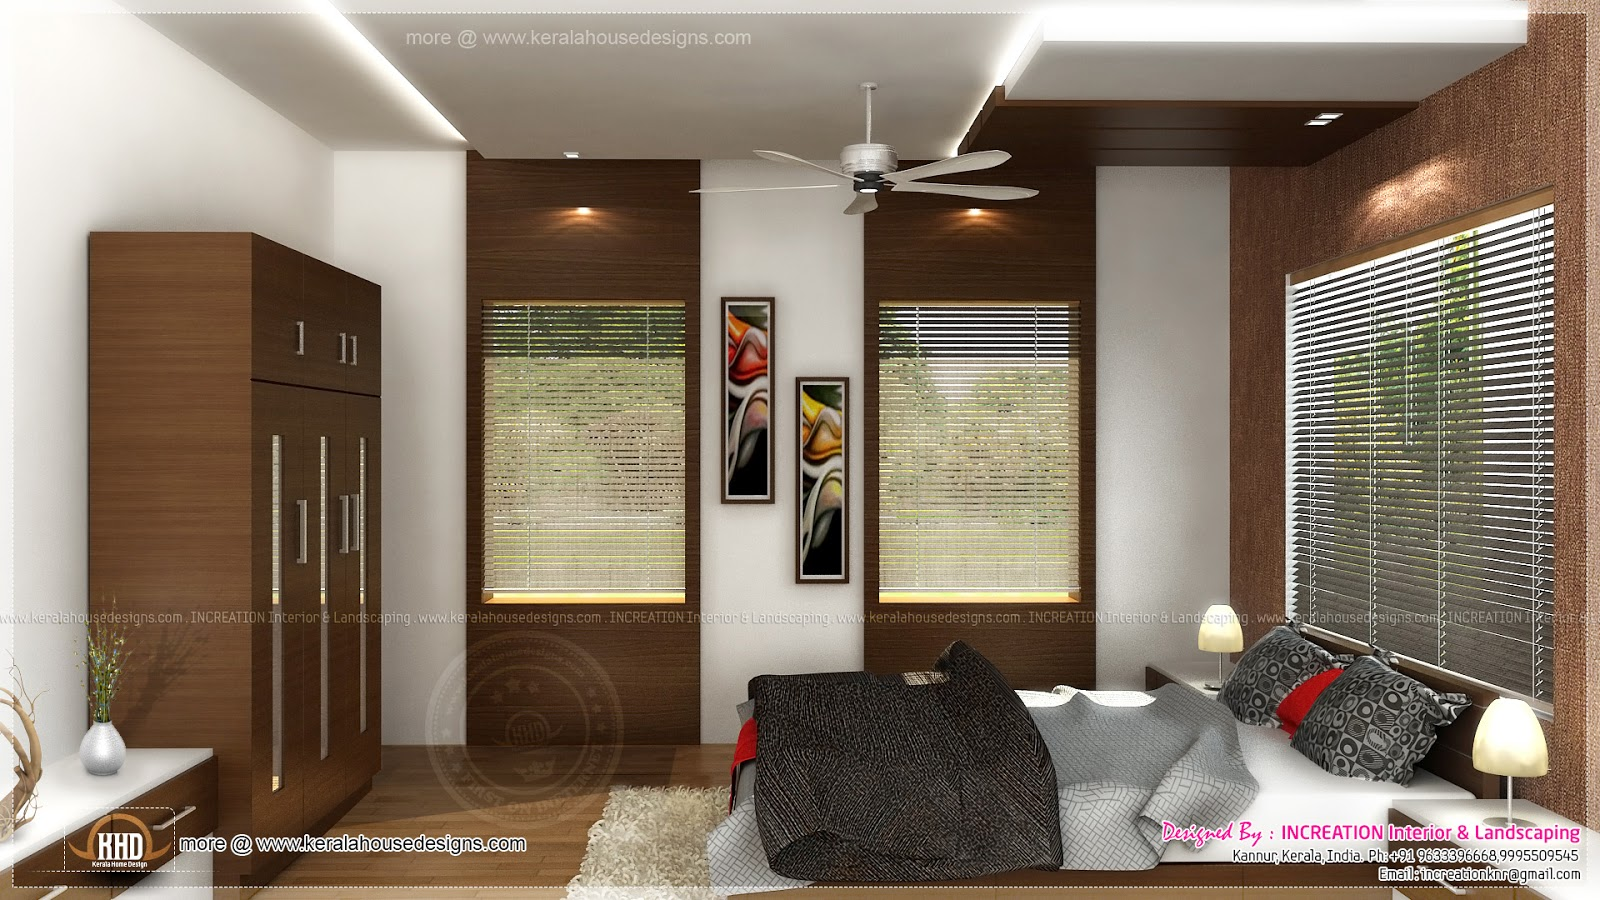 Interior designs from kannur kerala kerala home design for Home internal design